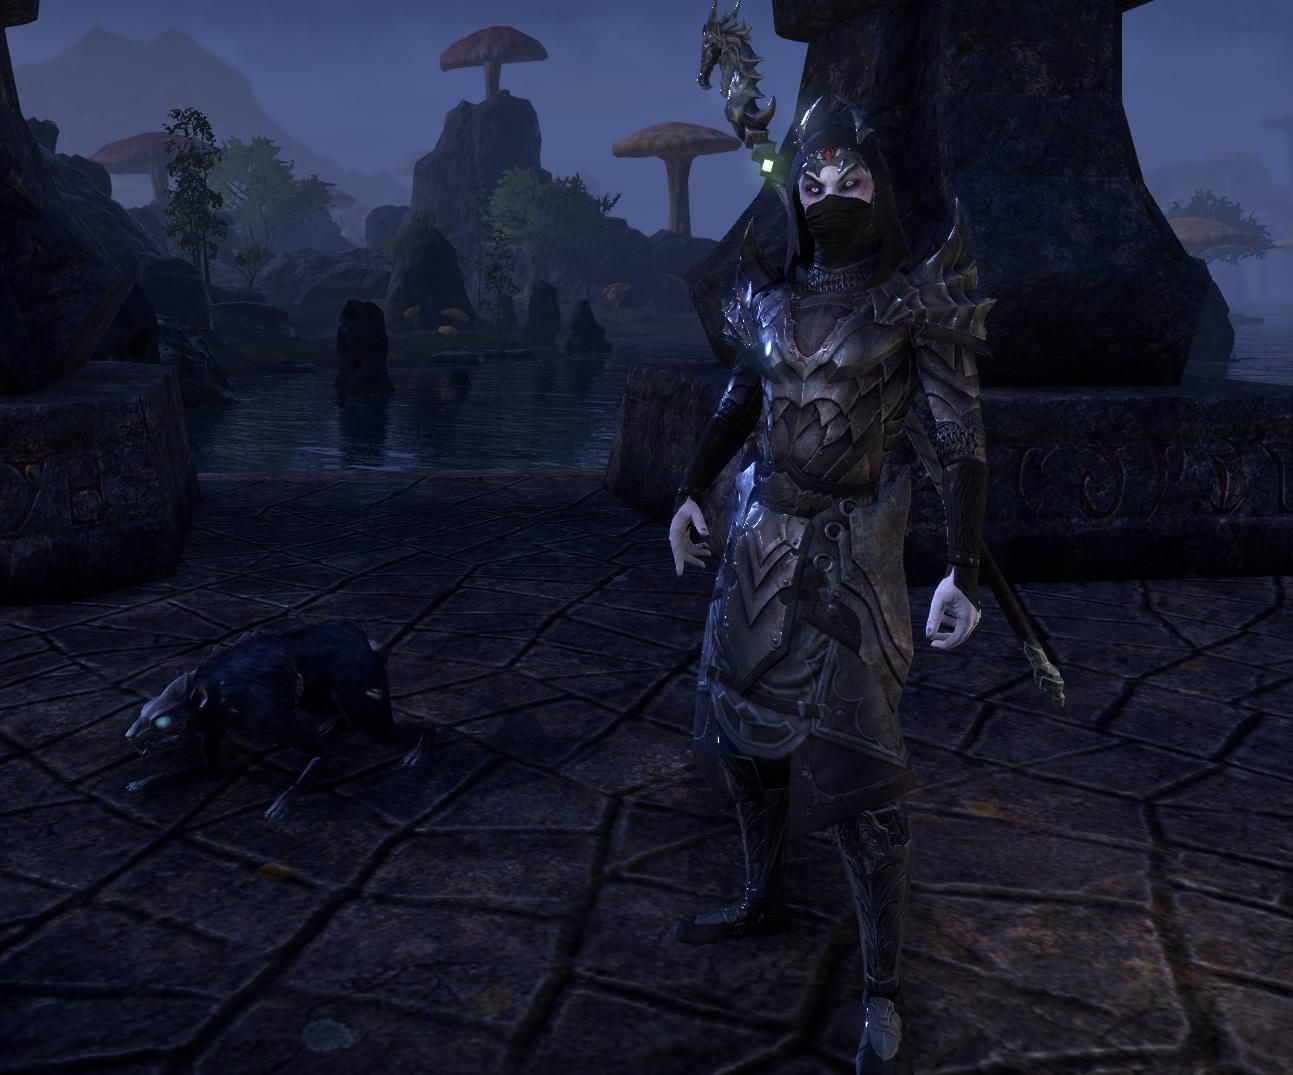 nightblade #elderscrollsonline #outfit | childhood in 2019